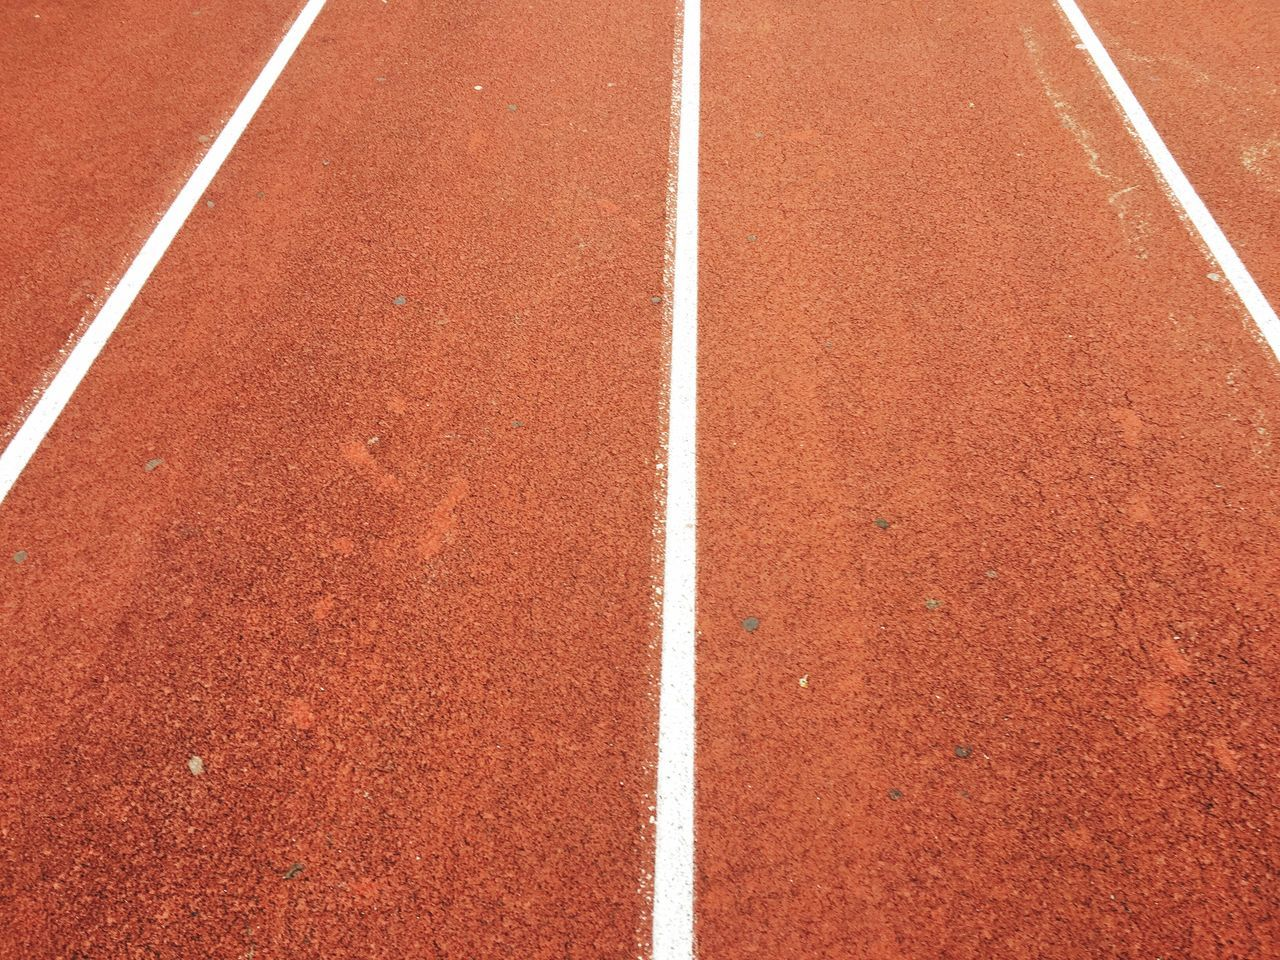 Running Track Sports Track Sport Track And Field Full Frame Day Rot Hintergrundgestaltung IPhoneography Iphoneonly Hintergrundbilder Backround Outdoors Backgrounds Red Track And Field Athlete Sports Race Competition Dividing Line Track And Field Stadium No People Competitive Sport Track Event Starting Line Sprinting